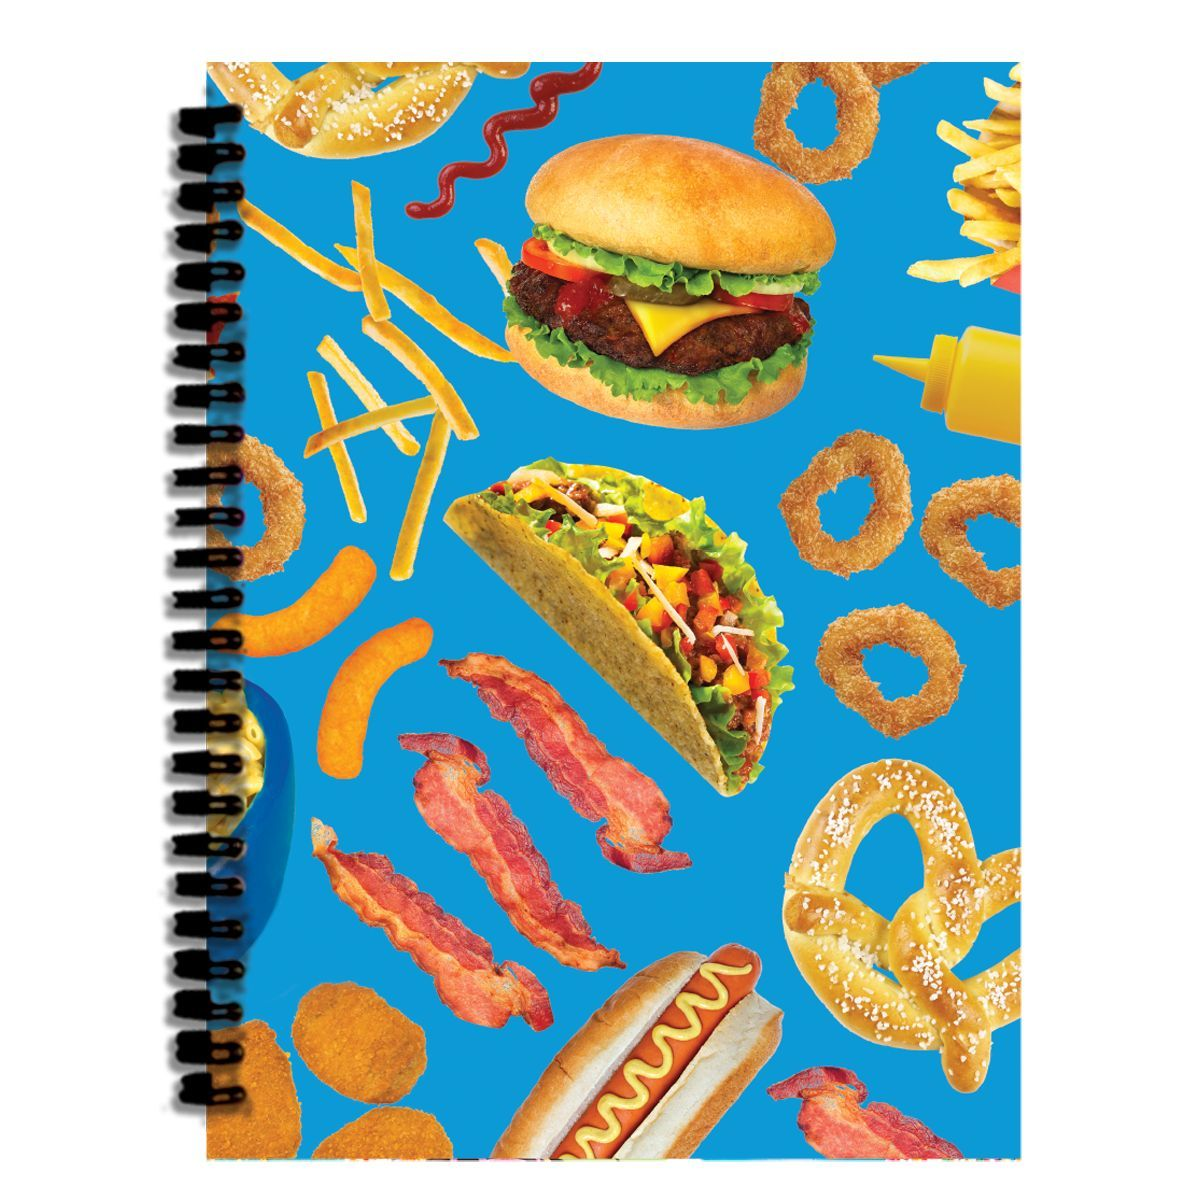 """3D front cover Back cover colorful coated stock 140 lined pages Coil bound 6 5/16"""" x 8 1/2""""                                                                                                                                                     More"""